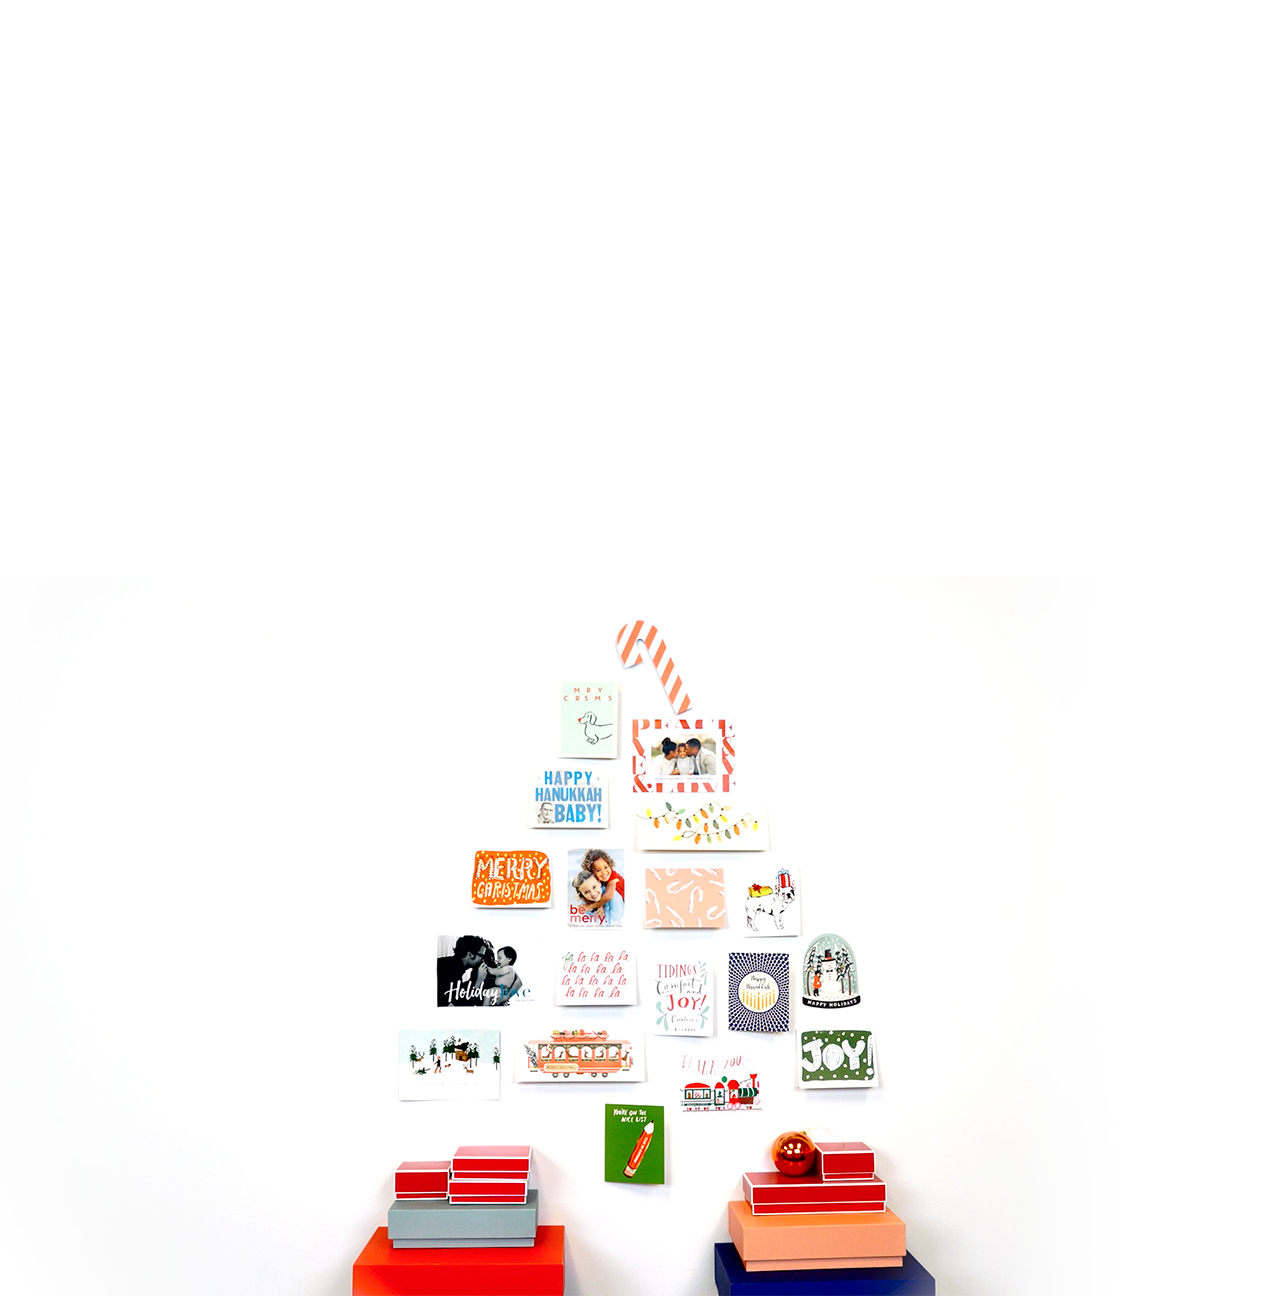 Wall Christmas tree made from cards